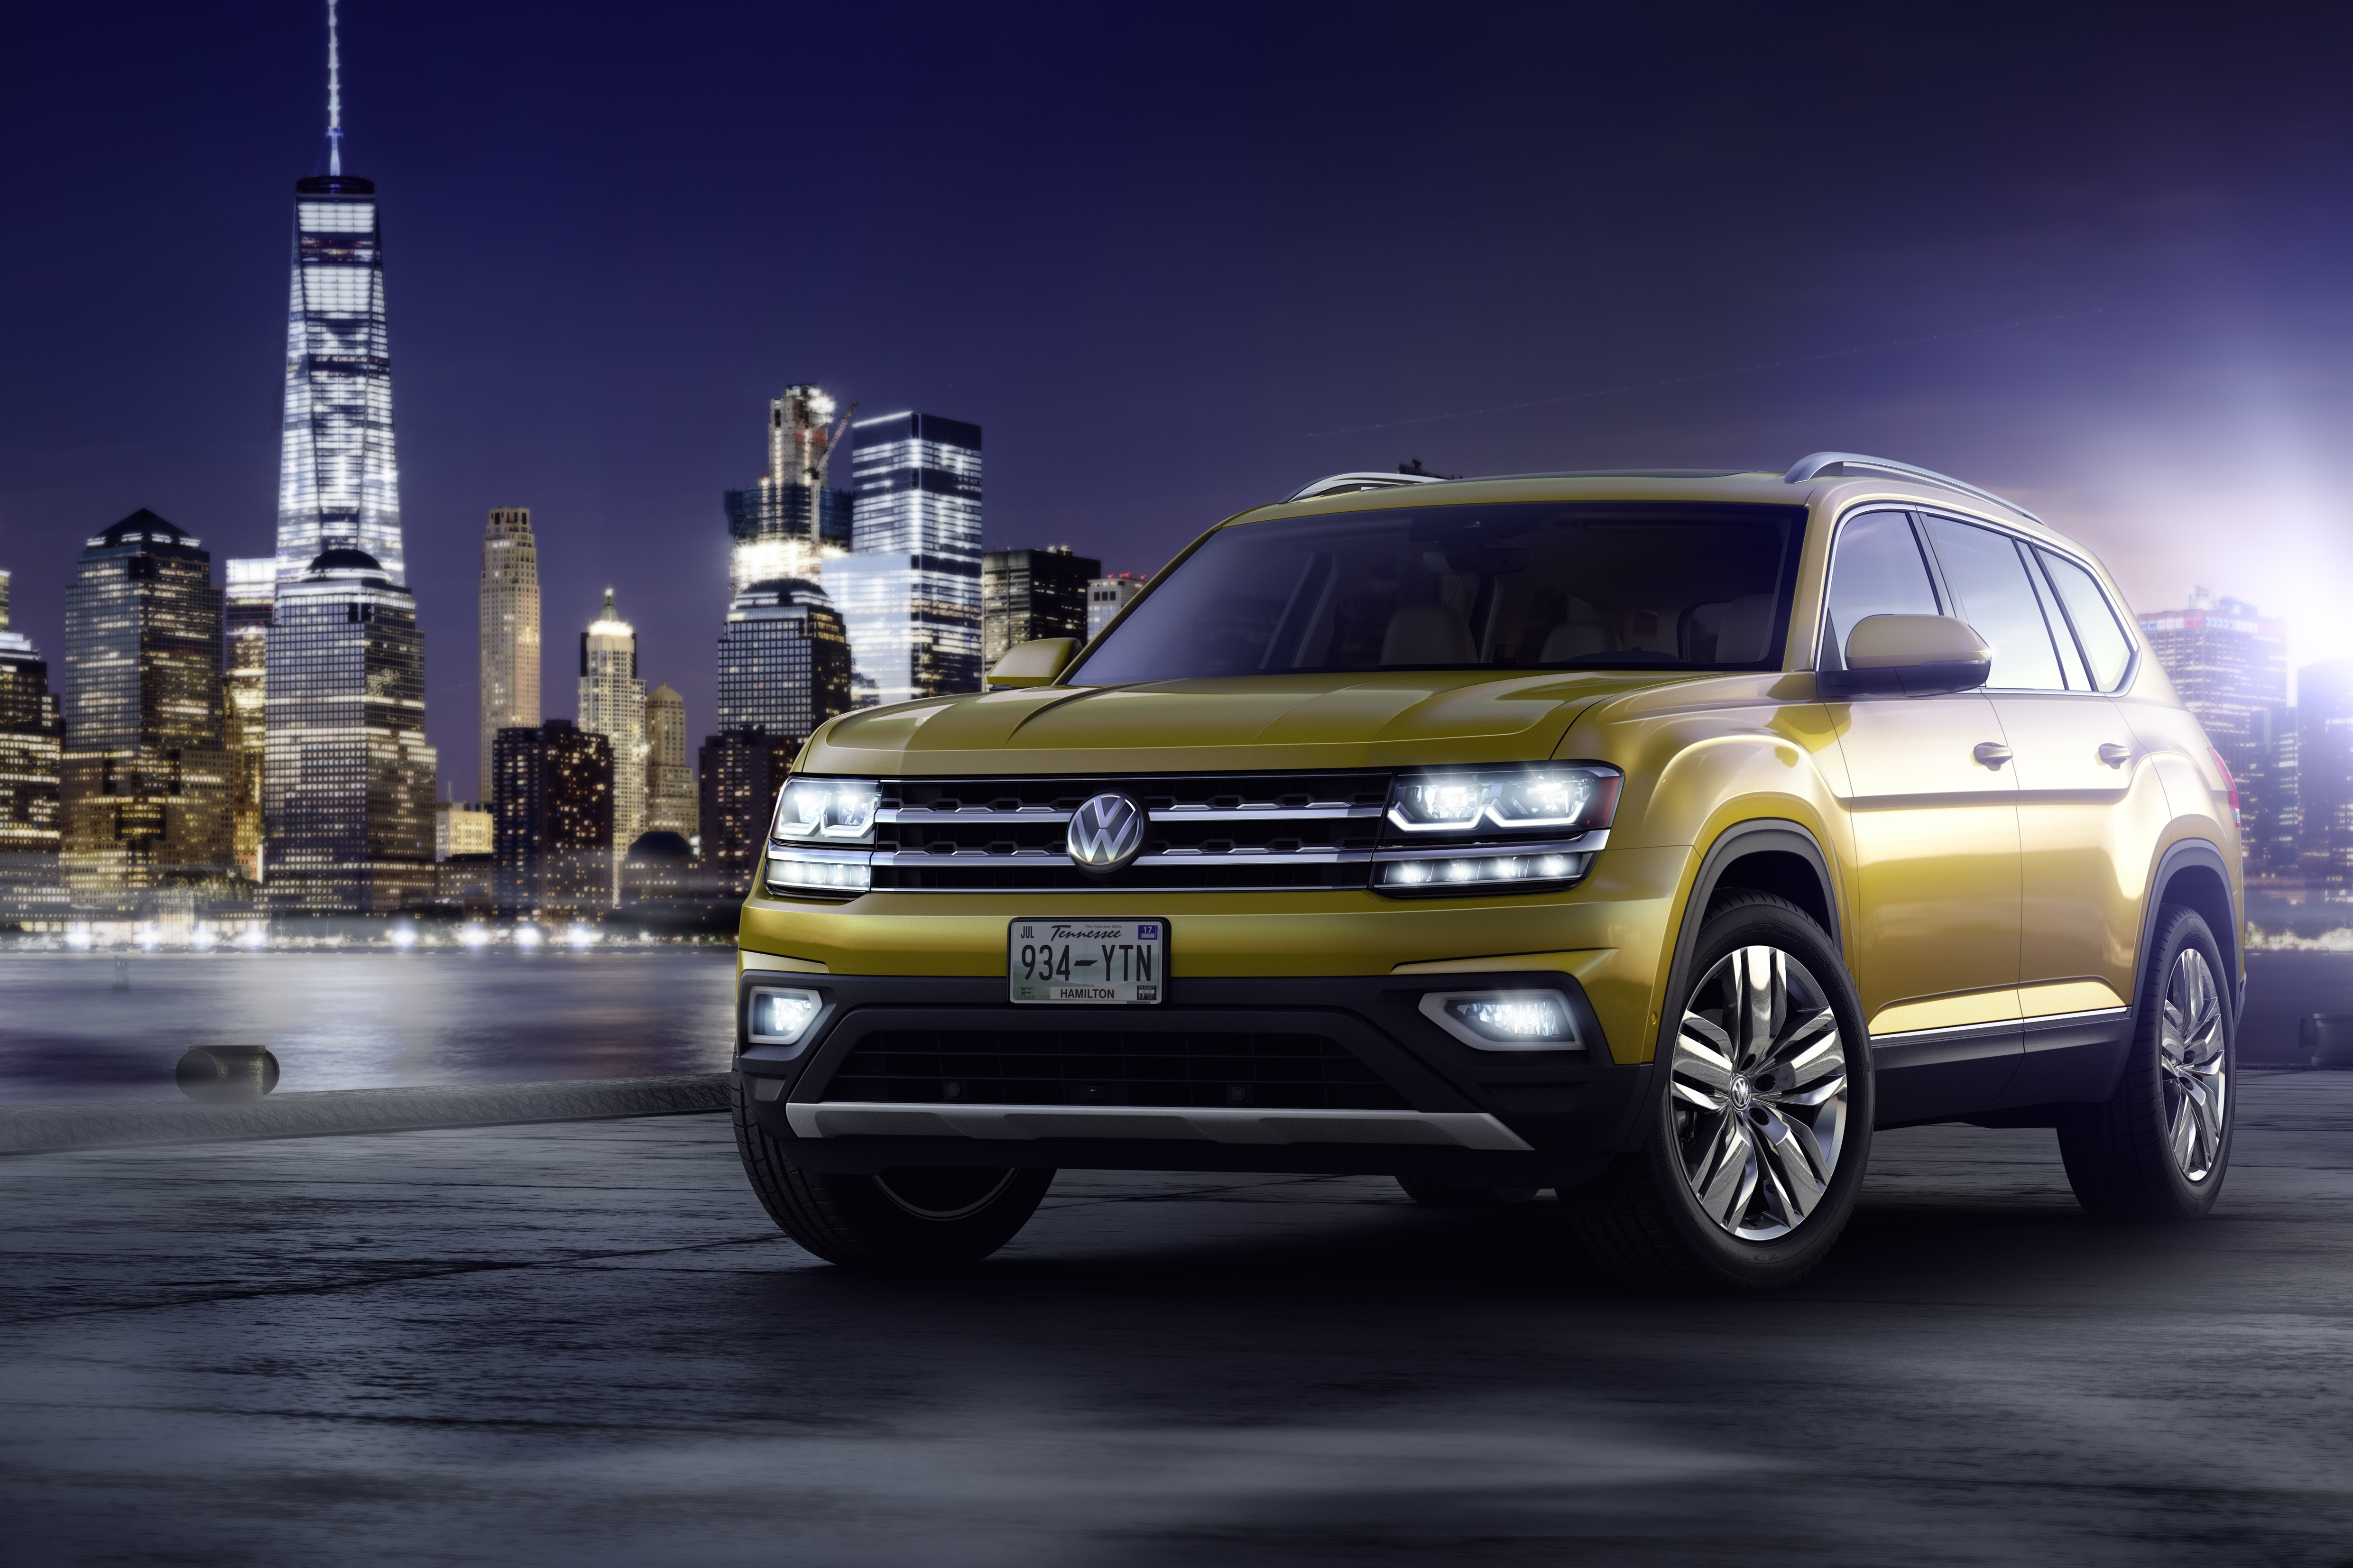 volkswagen prices u s built atlas suv from 30 500 autoevolution. Black Bedroom Furniture Sets. Home Design Ideas